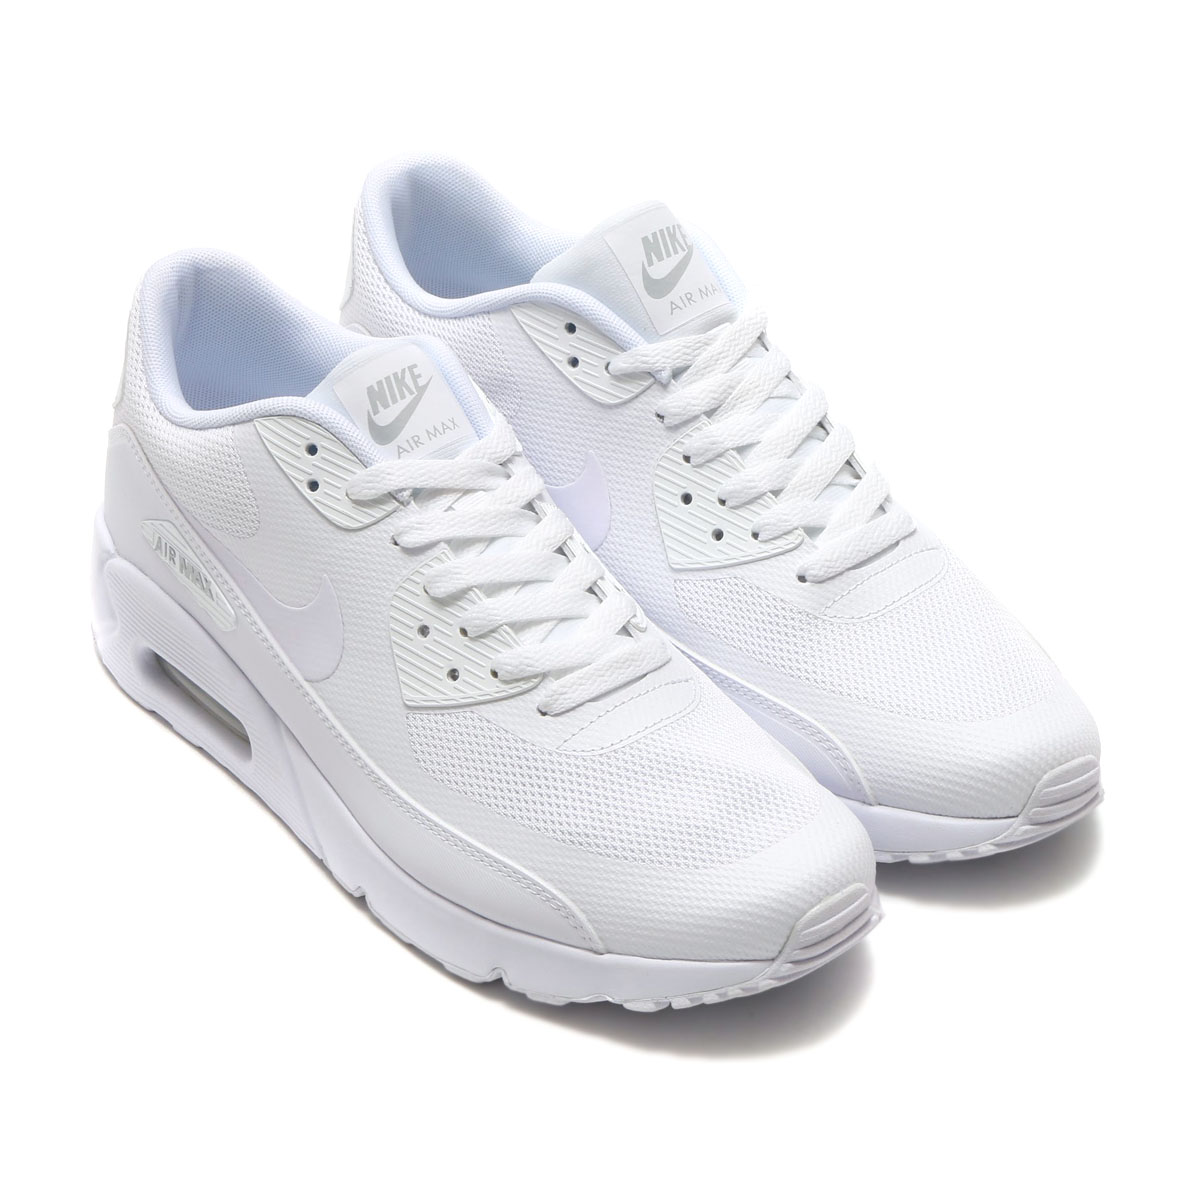 check out 46509 54663 NIKE AIR MAX 90 ULTRA 2.0 ESSENTIAL (Nike Air Max 90 Ultra 2.0 essential)  WHITE WHITE-WHITE-PURE PLATINUM 17SP-I